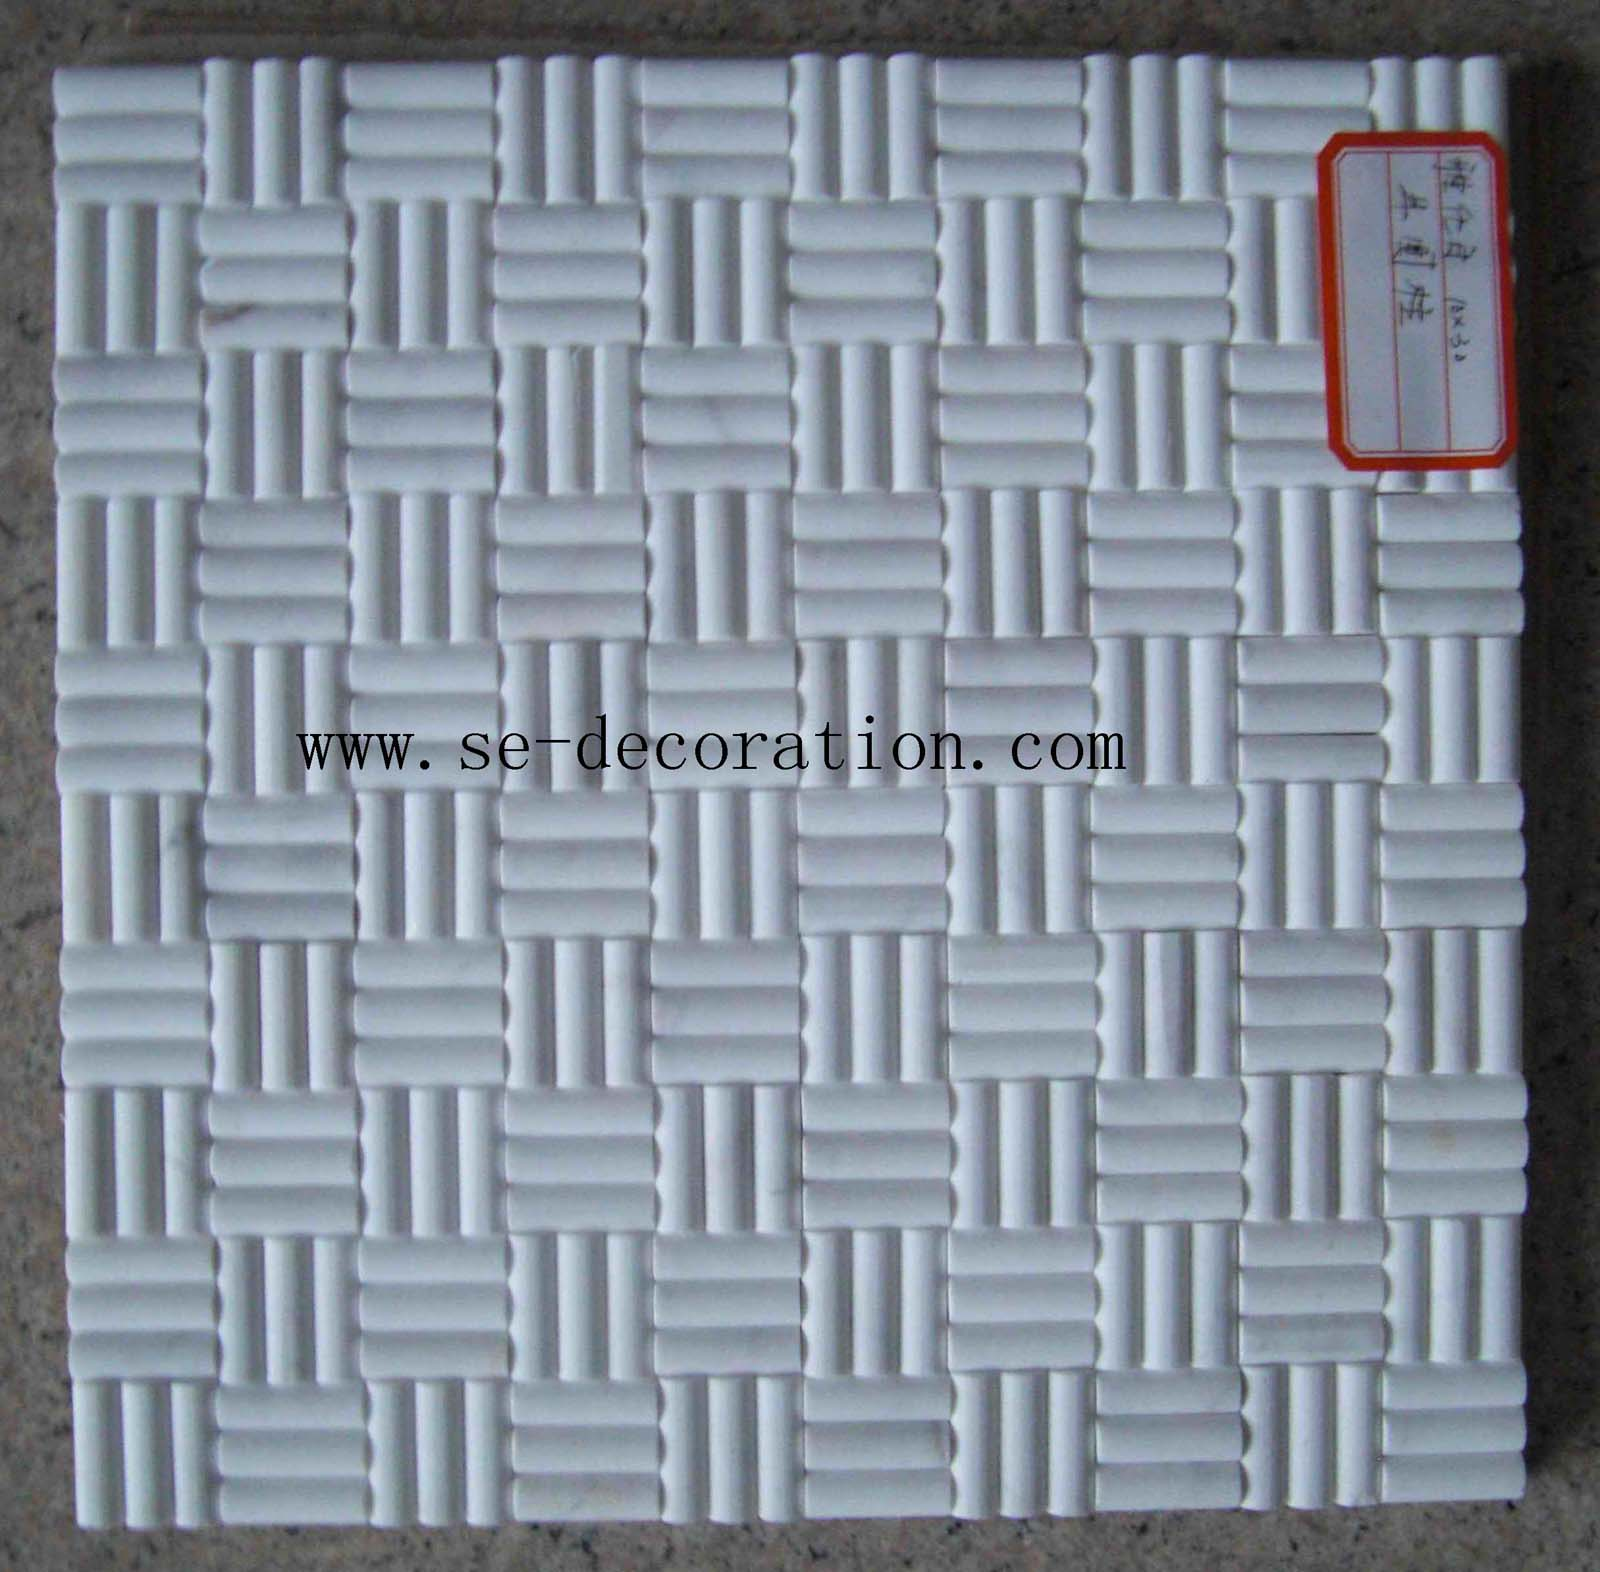 Product name:ariston white marble mosaic